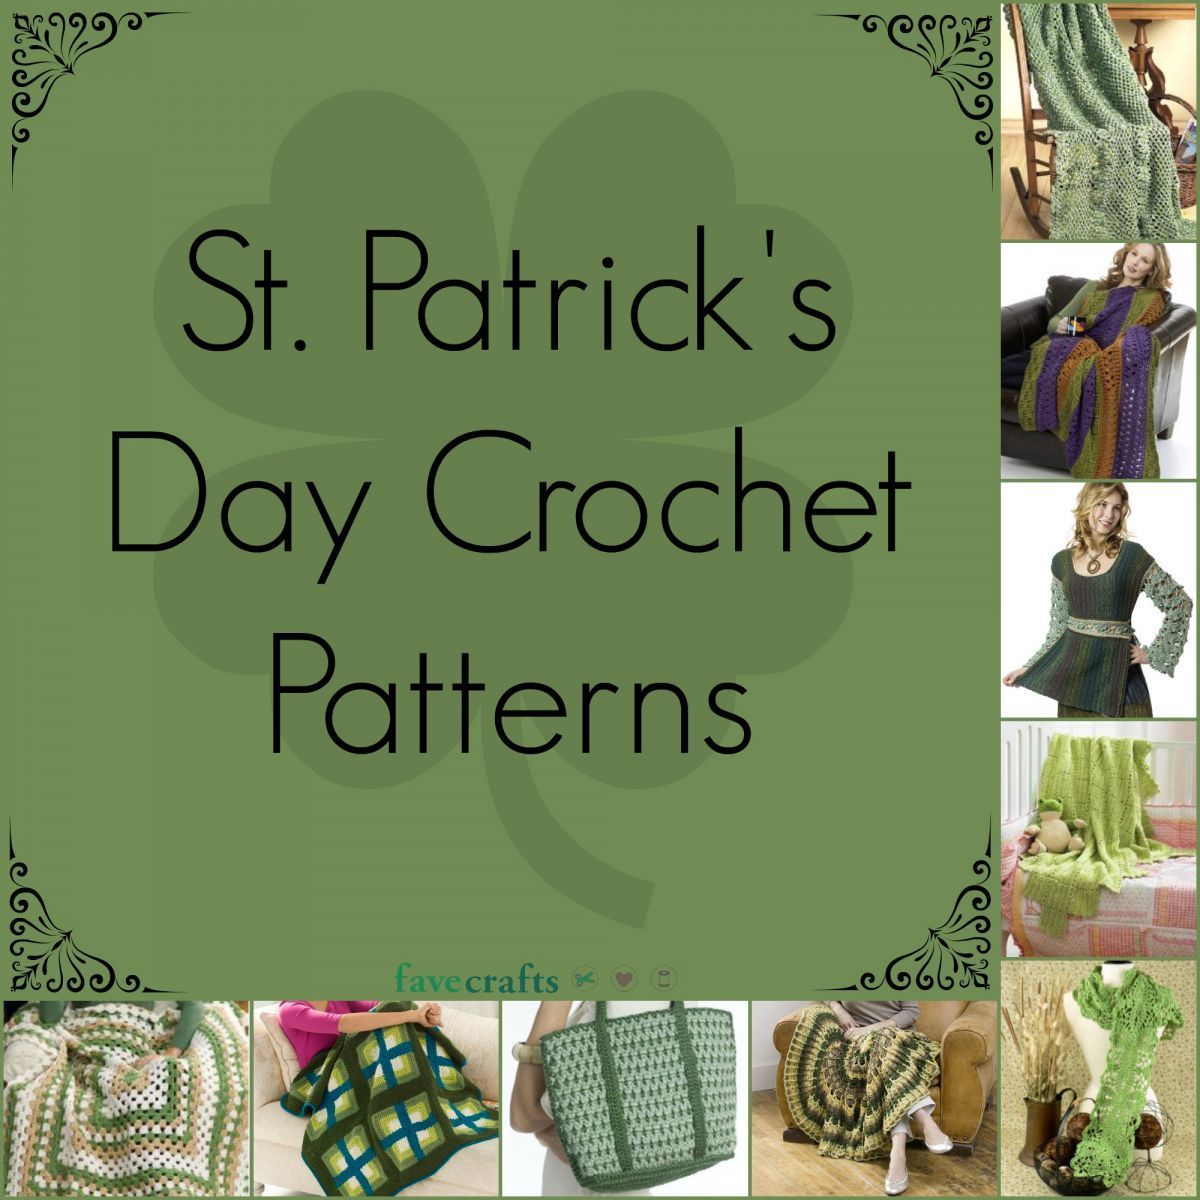 18 st patricks day crochet patterns crochet free crochet and 18 st patricks day crochet patterns bankloansurffo Images